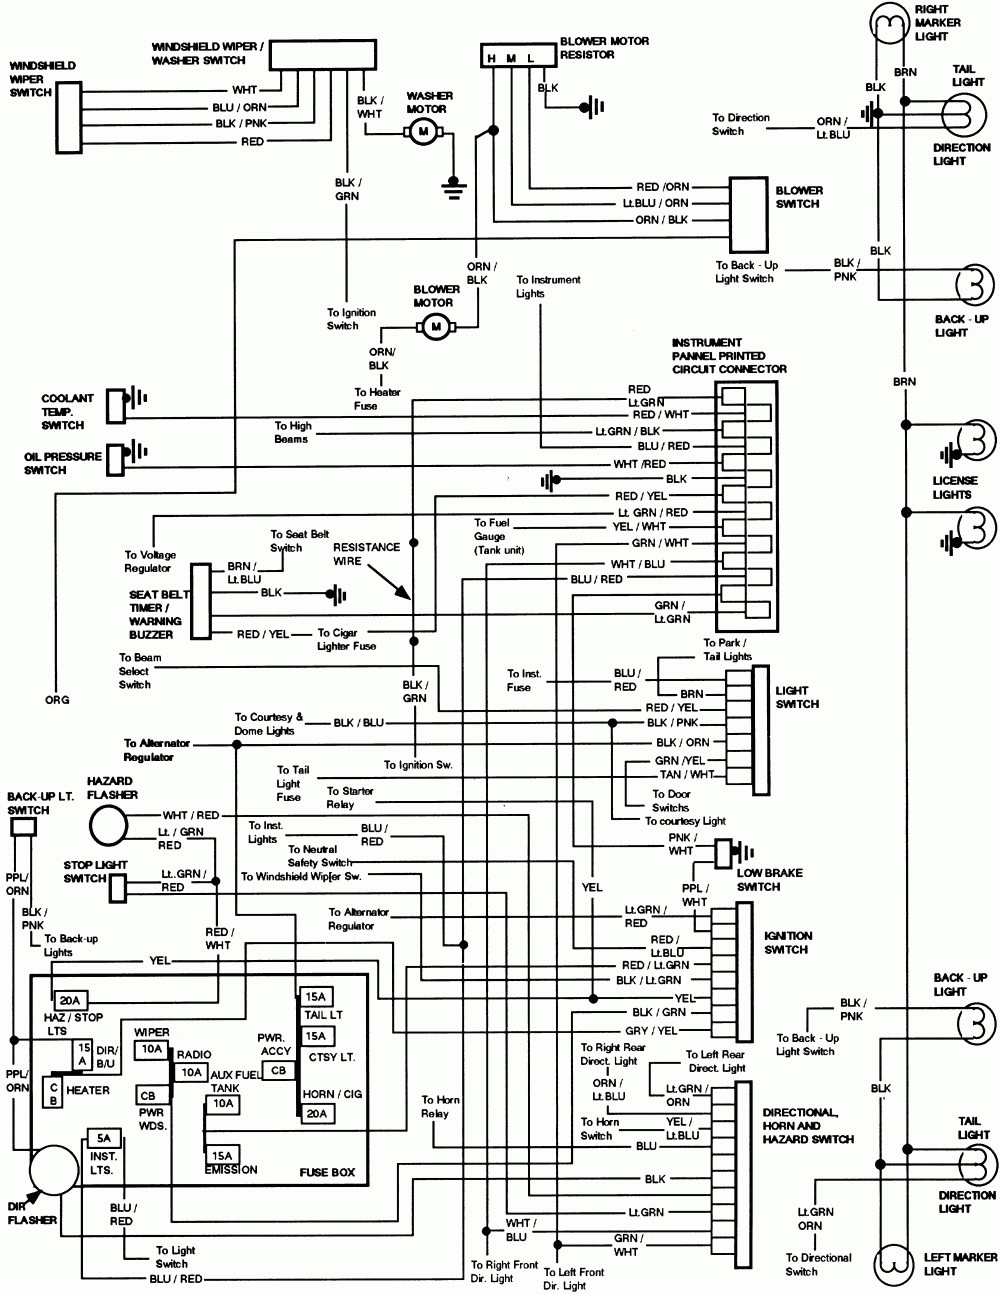 ford alternator wiring diagram as well 1979 ford f 150 wiring rh jamairline co Ford 3G Alternator Wiring Diagram Ford F-150 Alternator Diagram